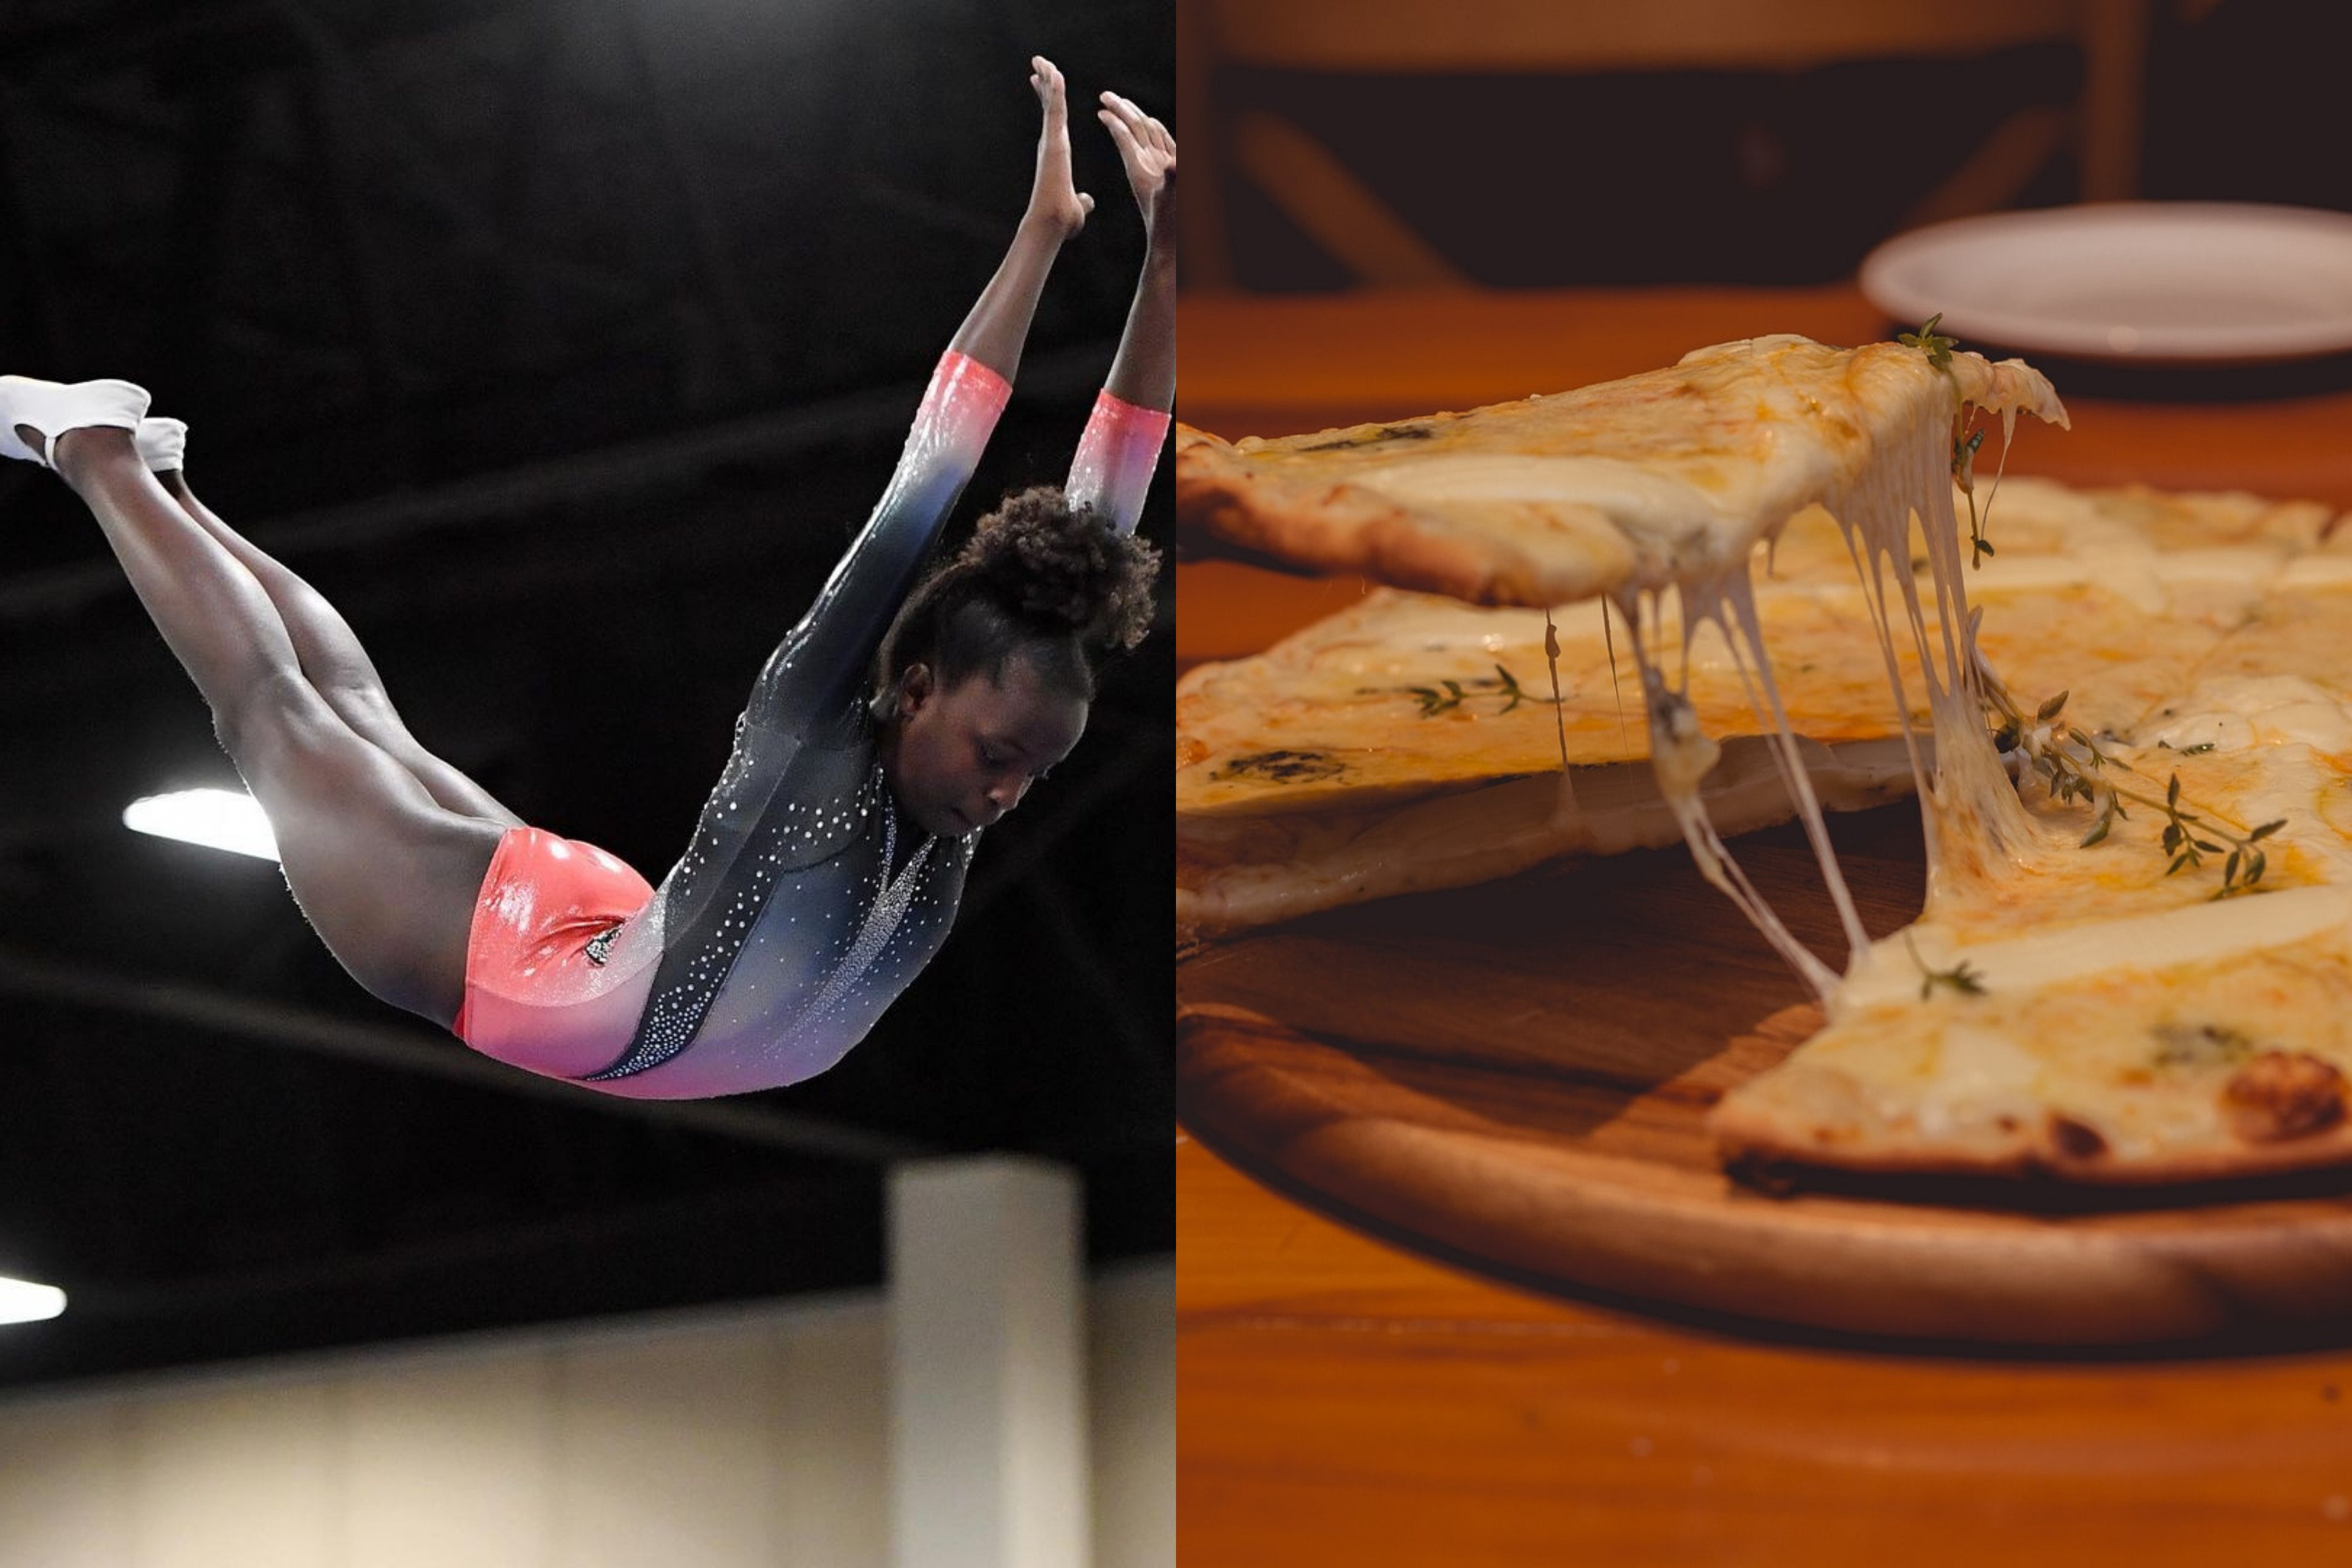 Athlete from USA gymnastics Alongside a Cheese Pizza | Source: Instagram - Unsplash